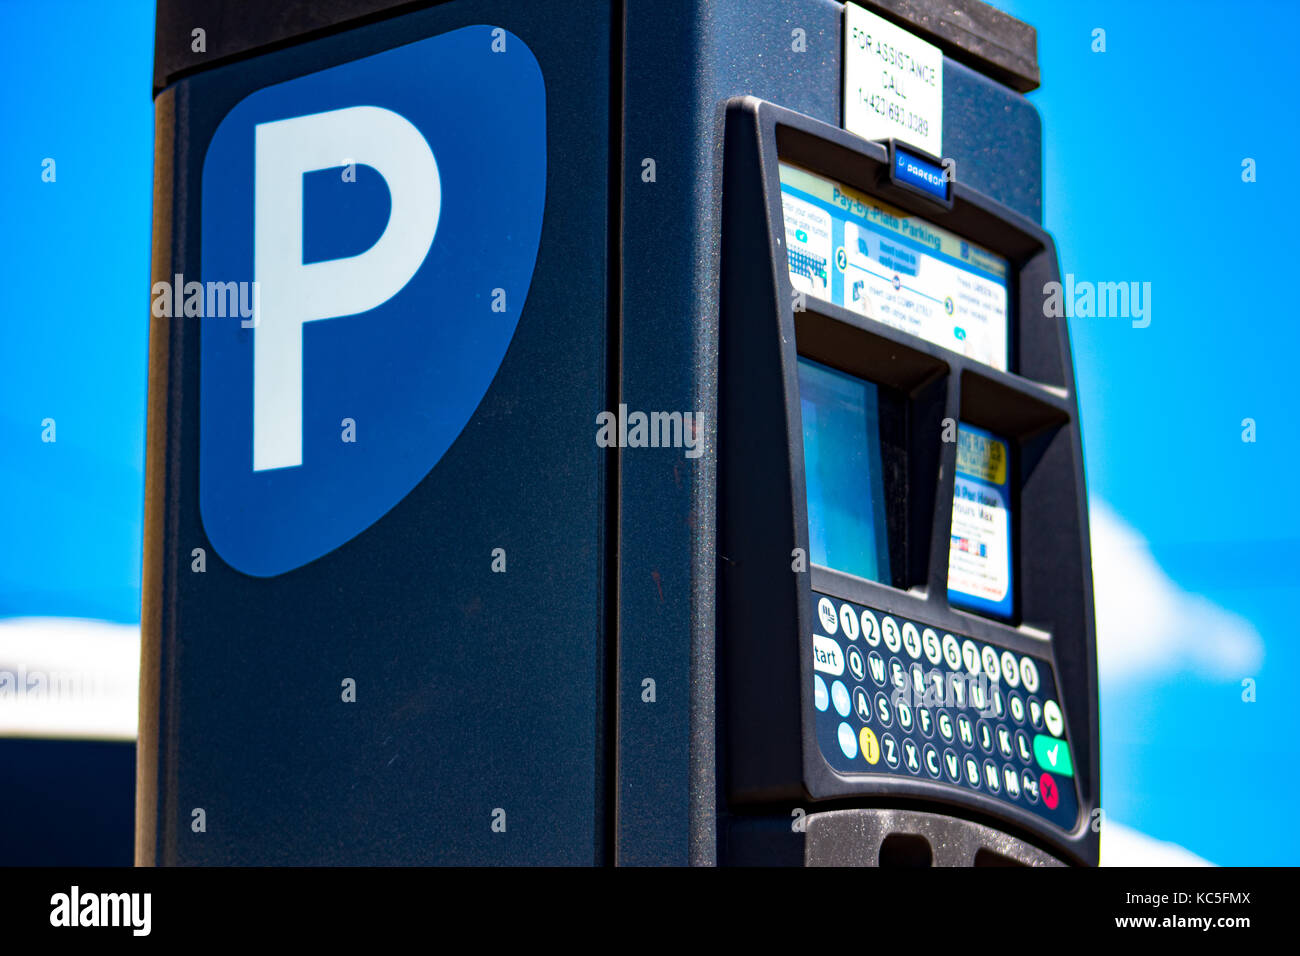 Parking meter - Stock Image